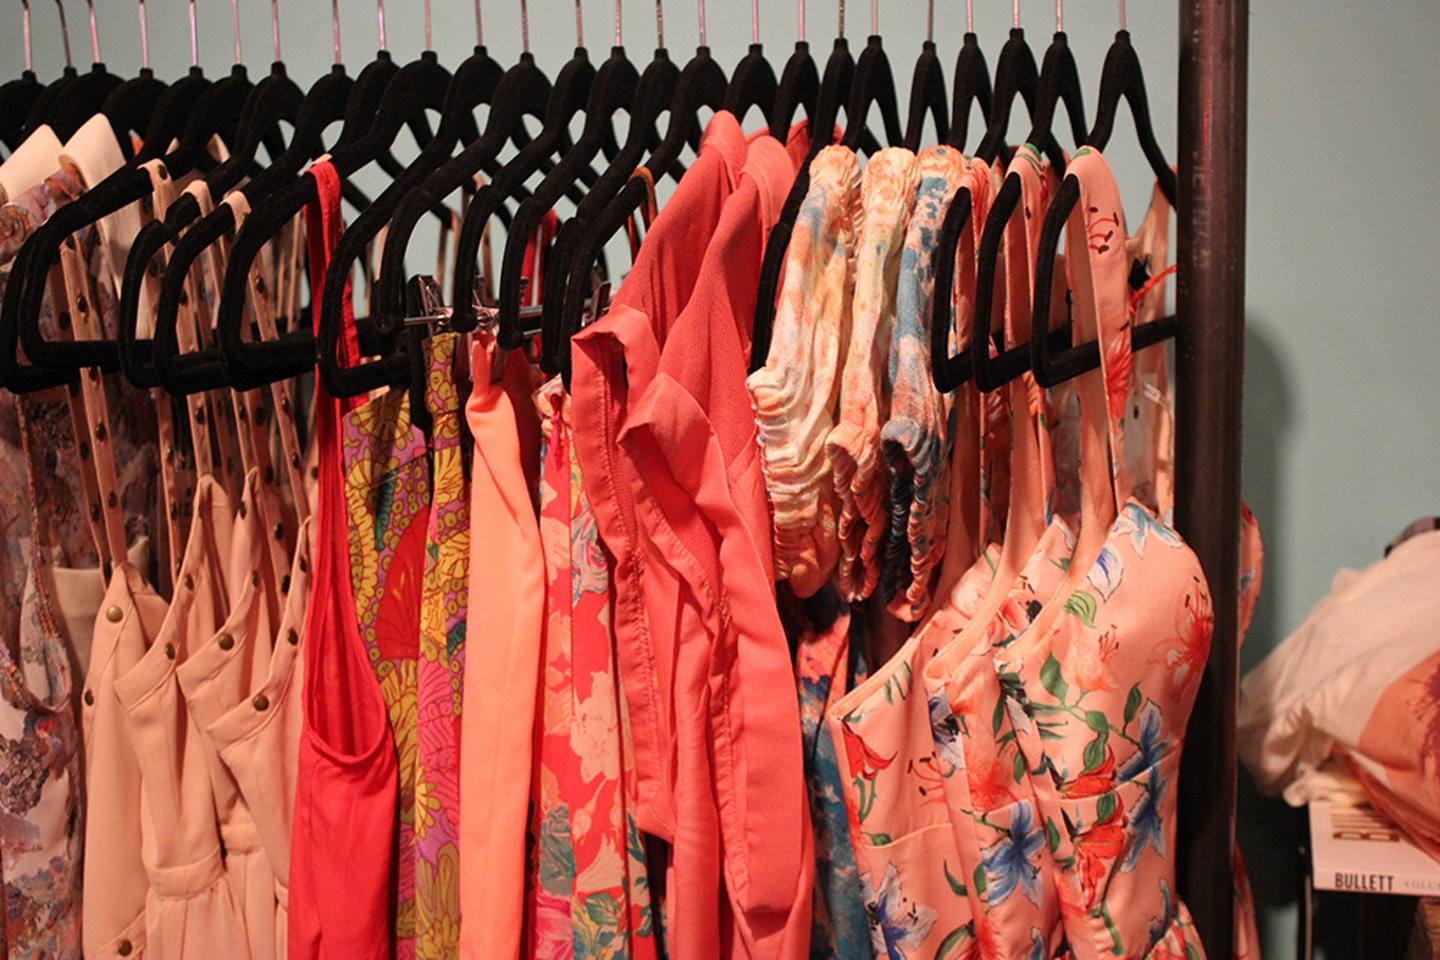 Summer at Fitzroy Boutique